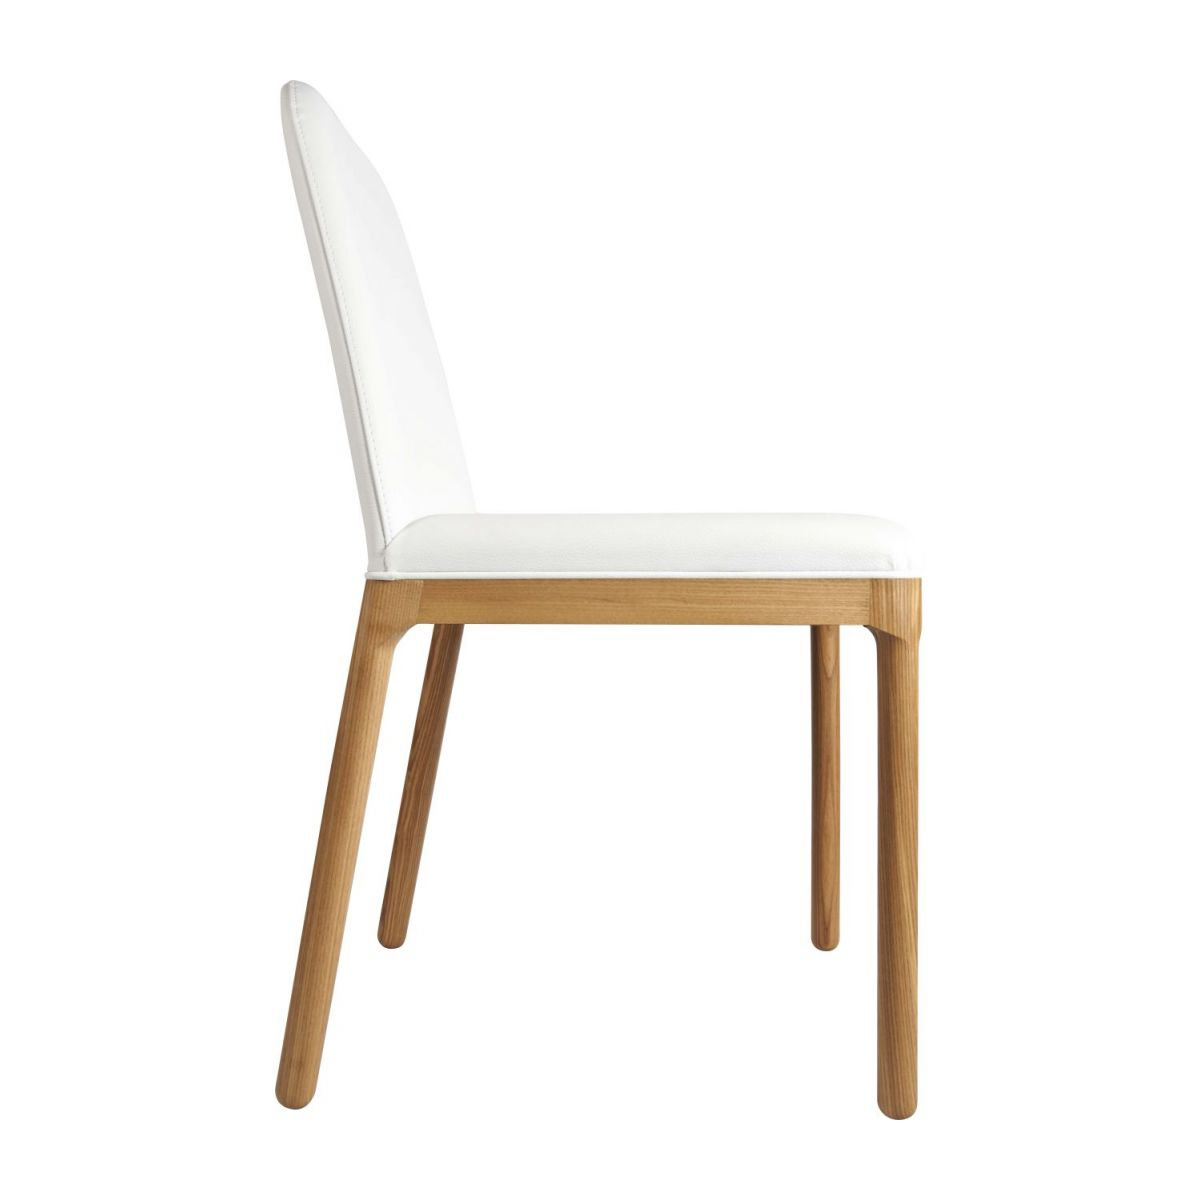 Dining room chairDining room chair n°6